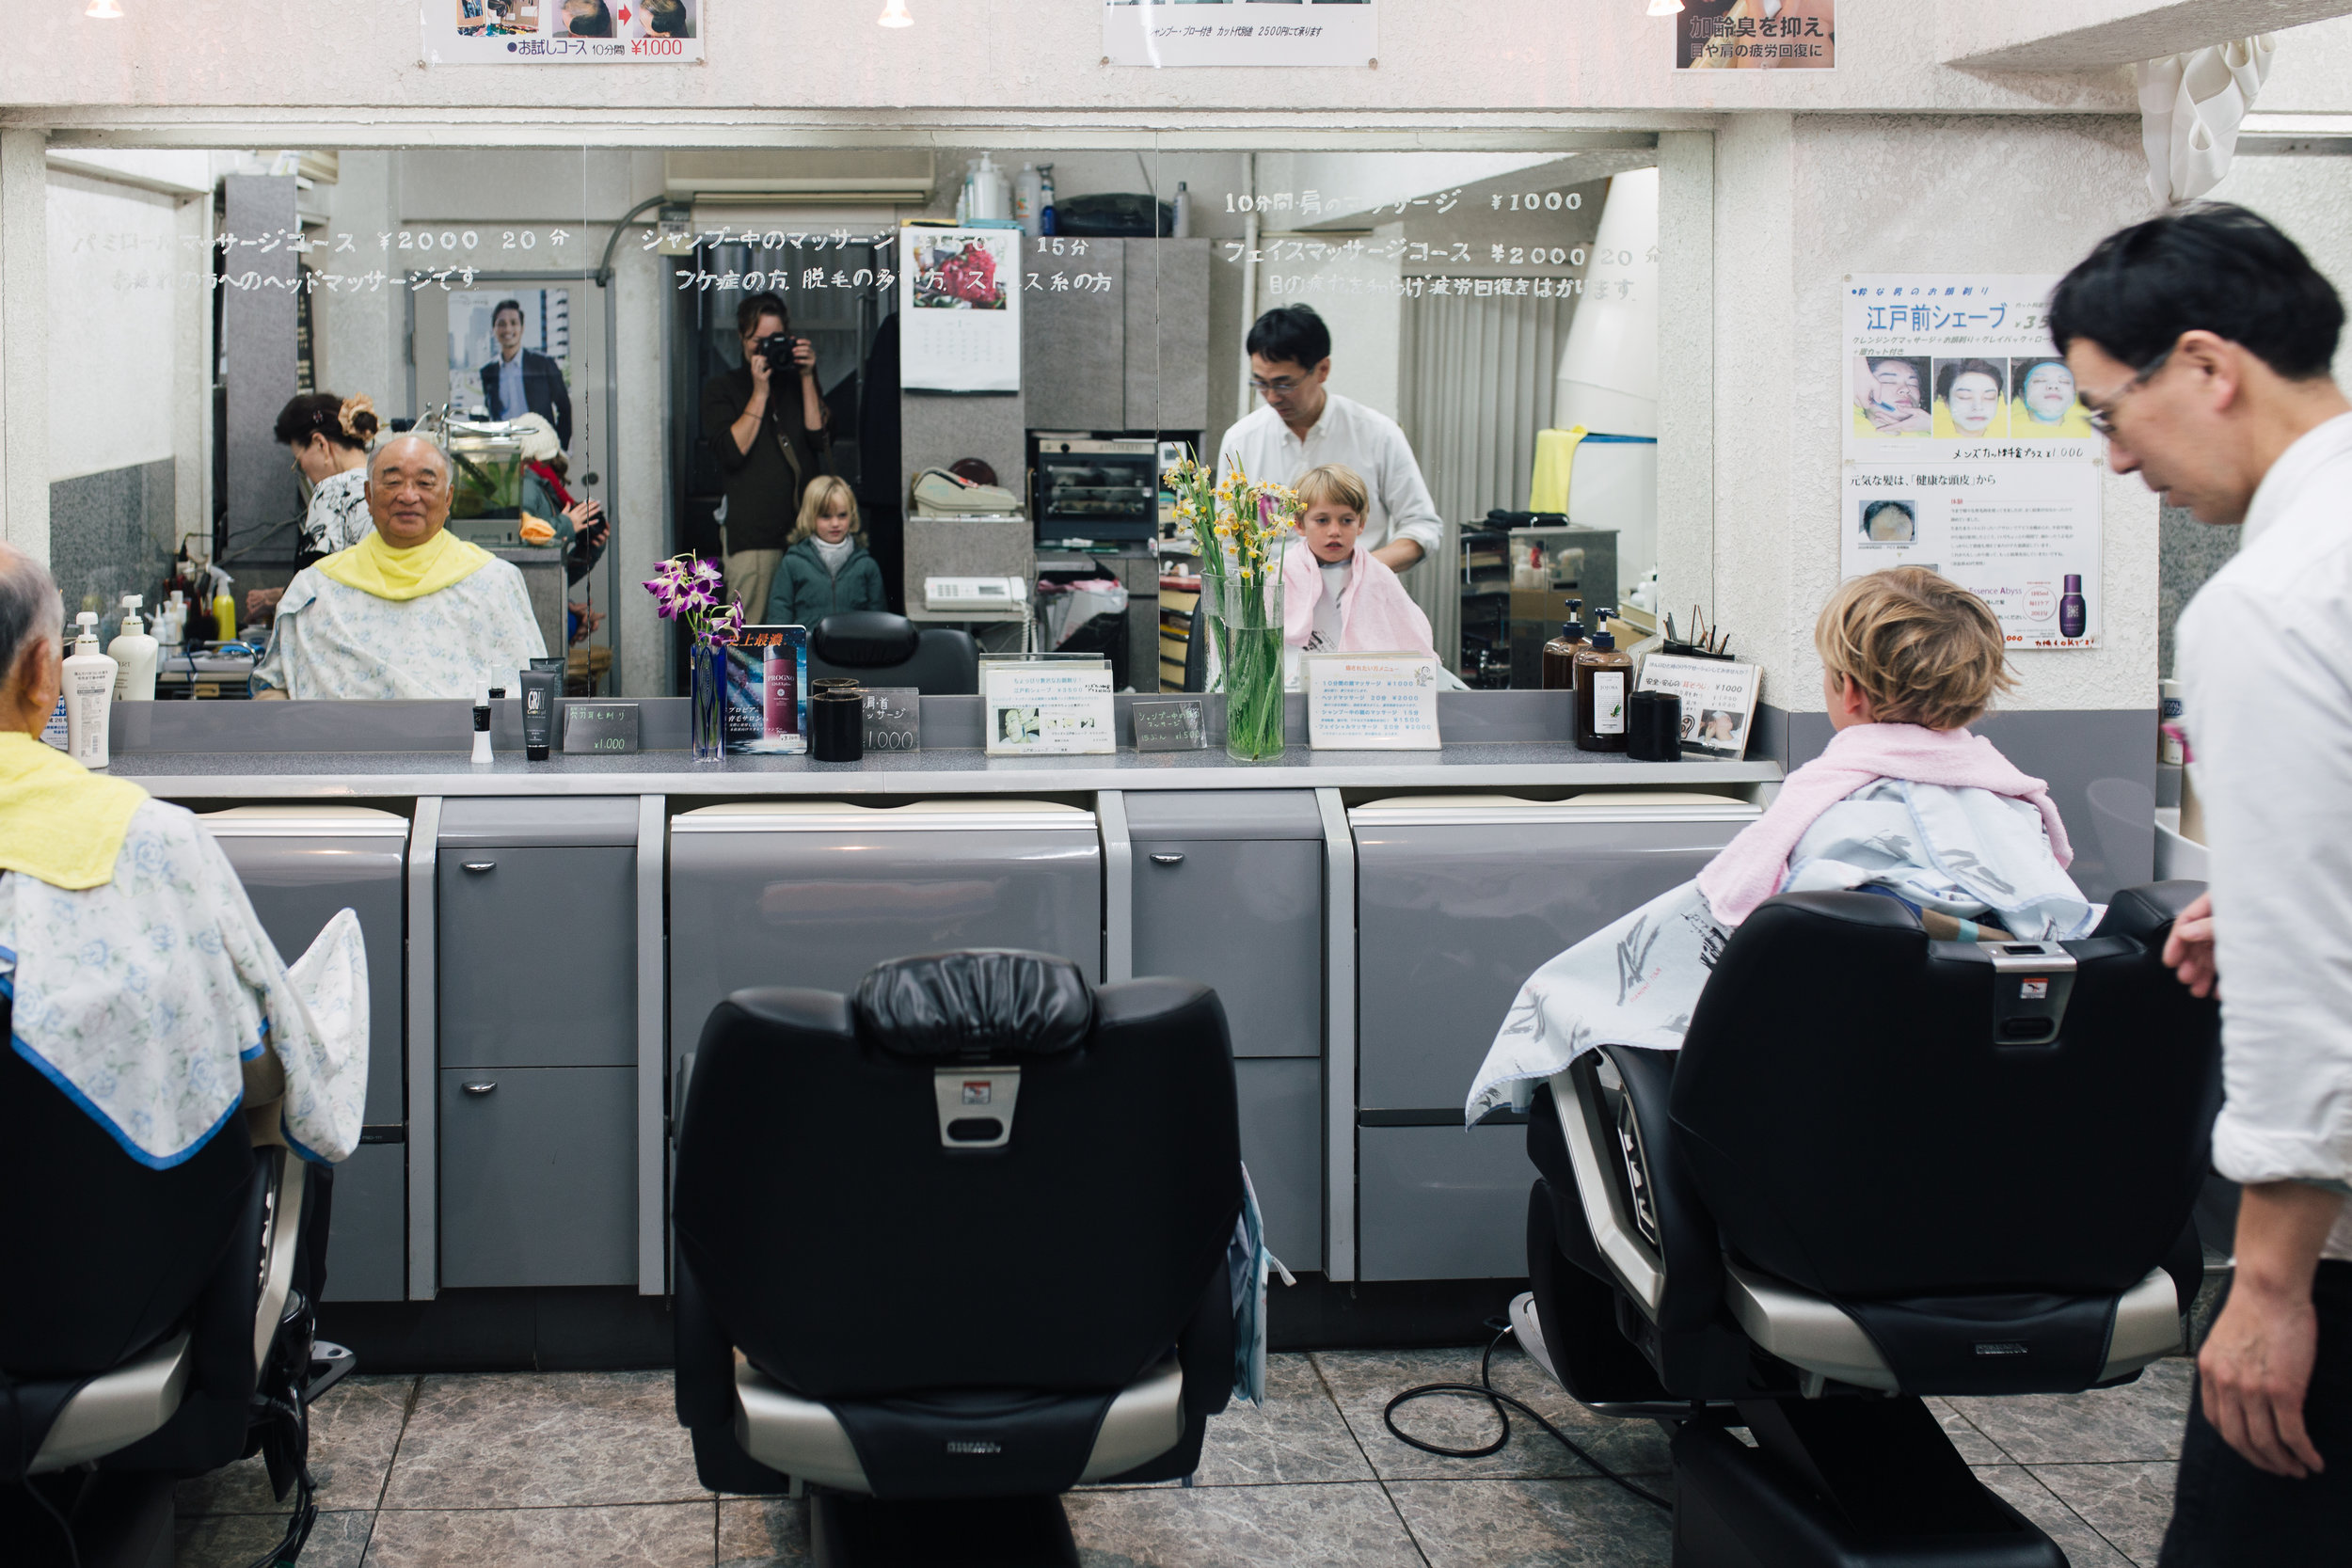 Tom, our sacrificial lamb, at the barbershop in Tokyo